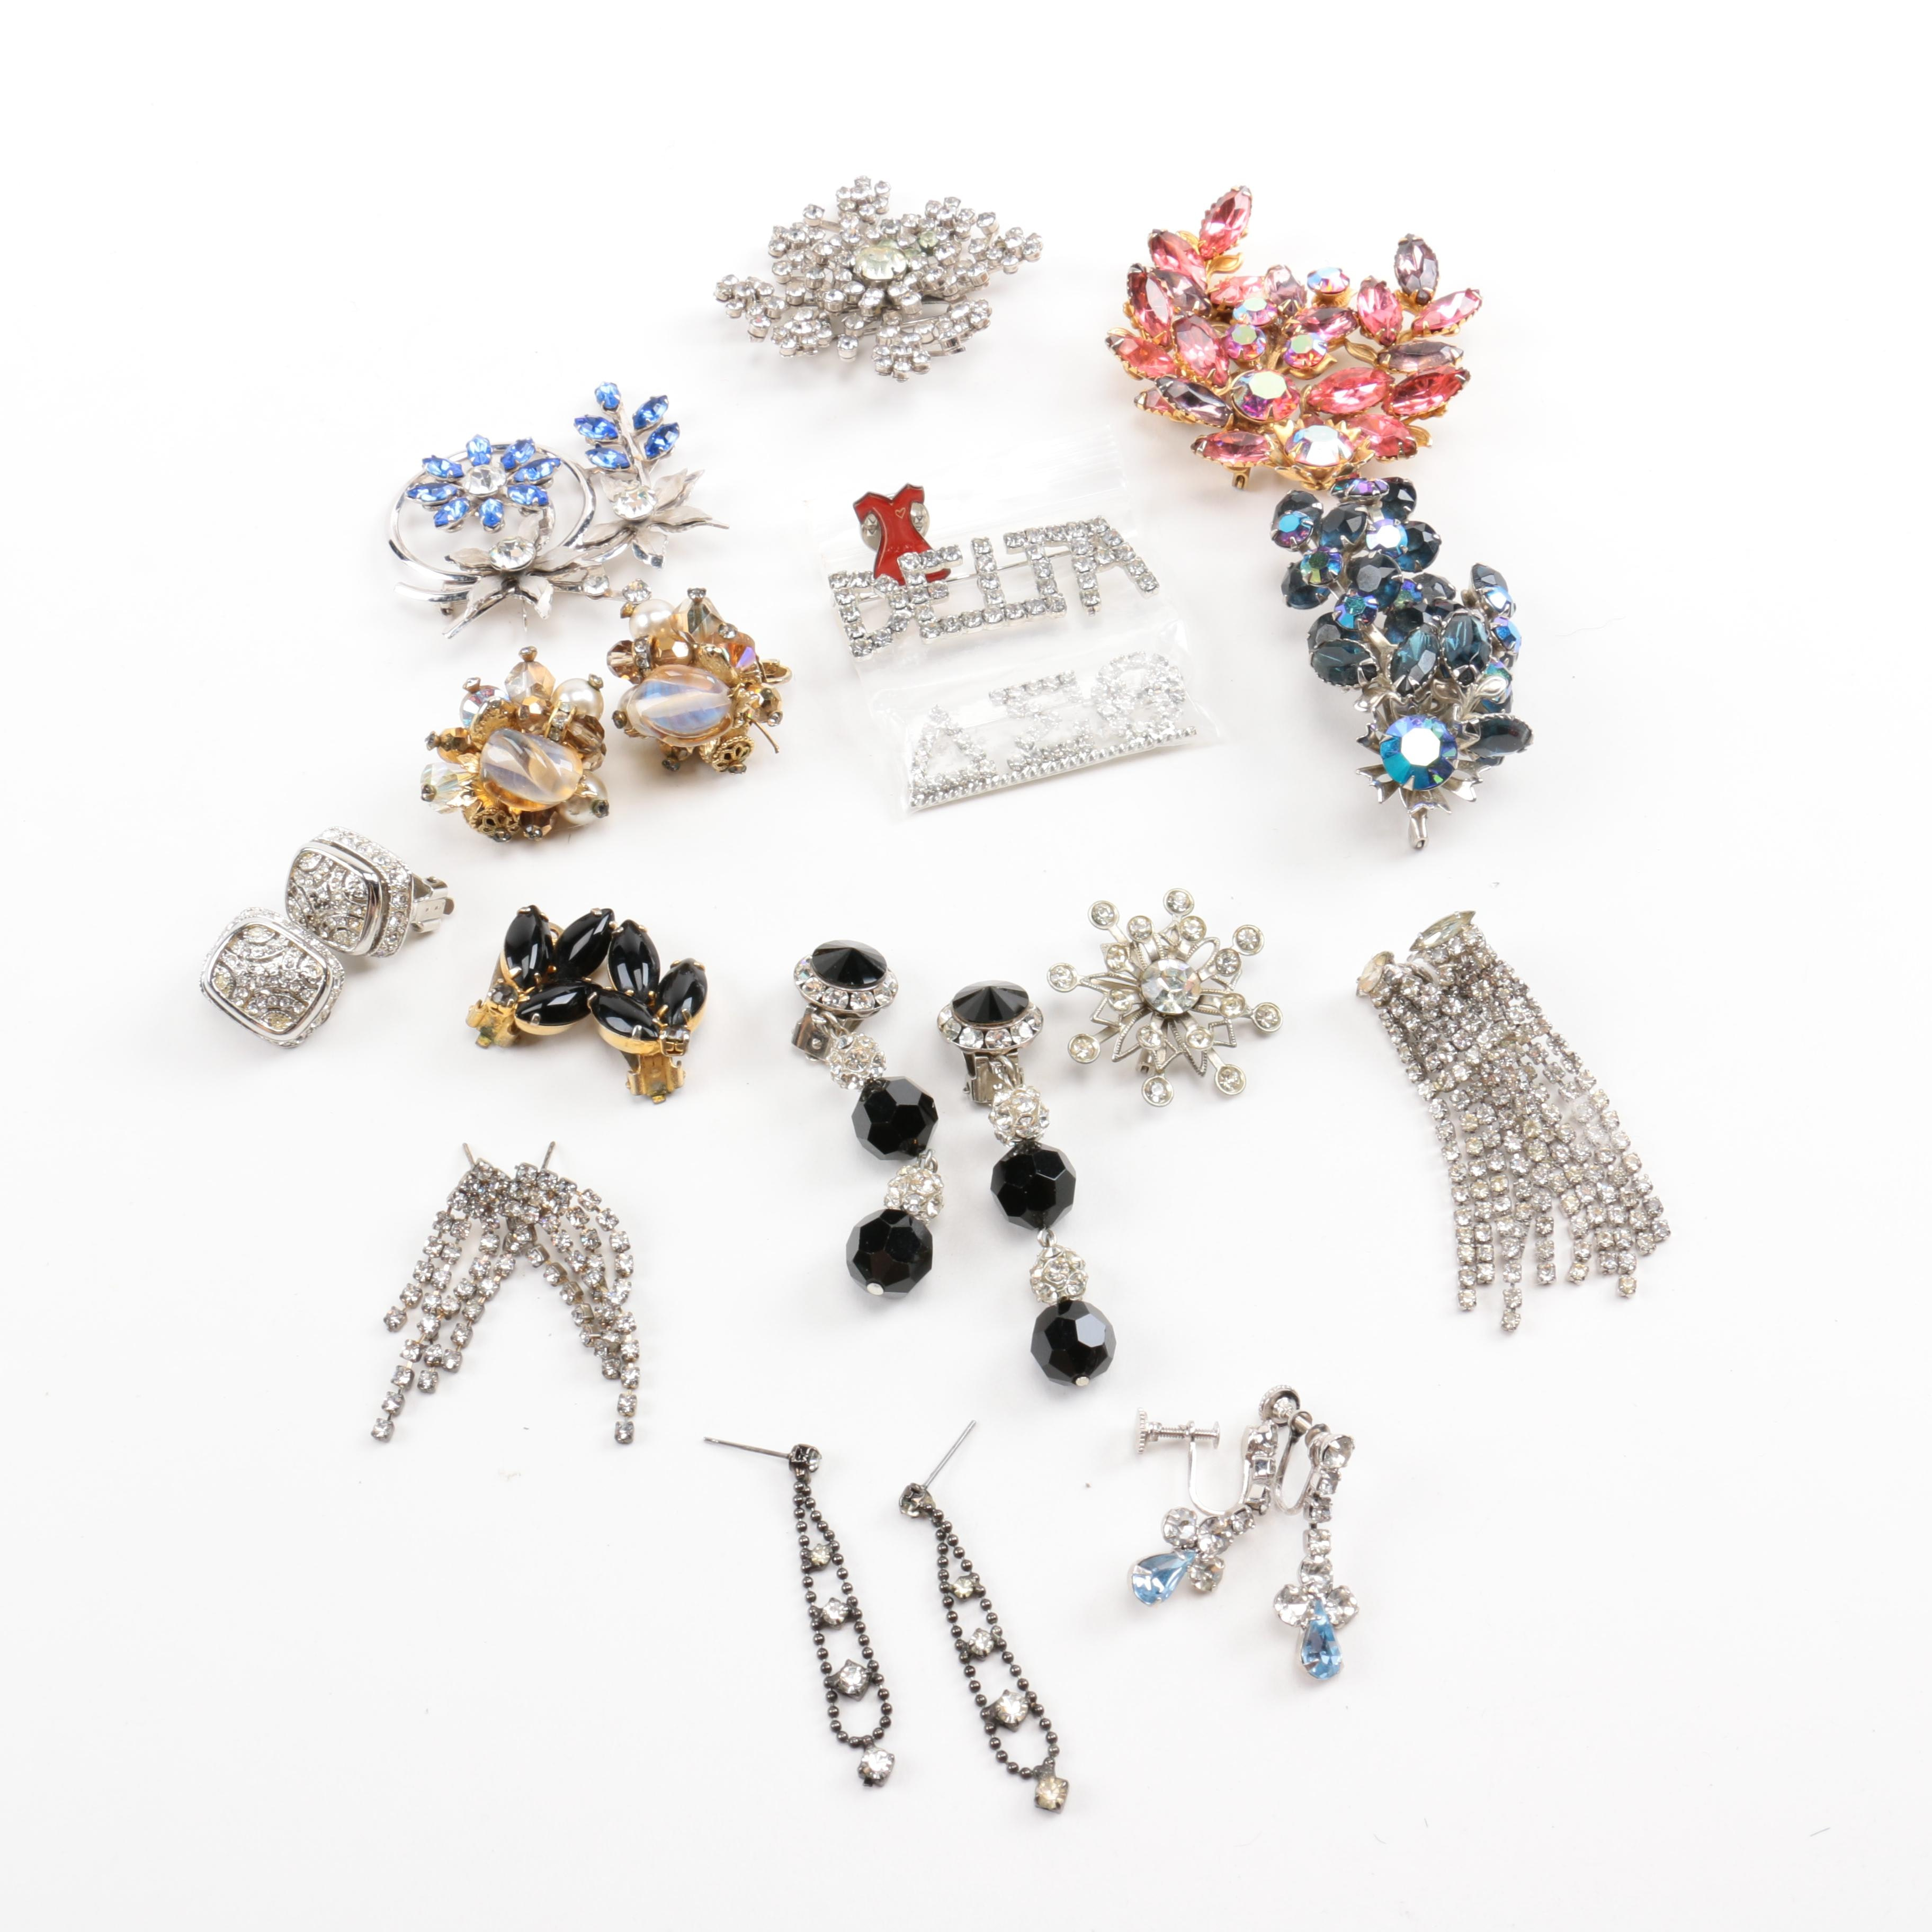 Vintage Brooches and Earrings Including Vendome